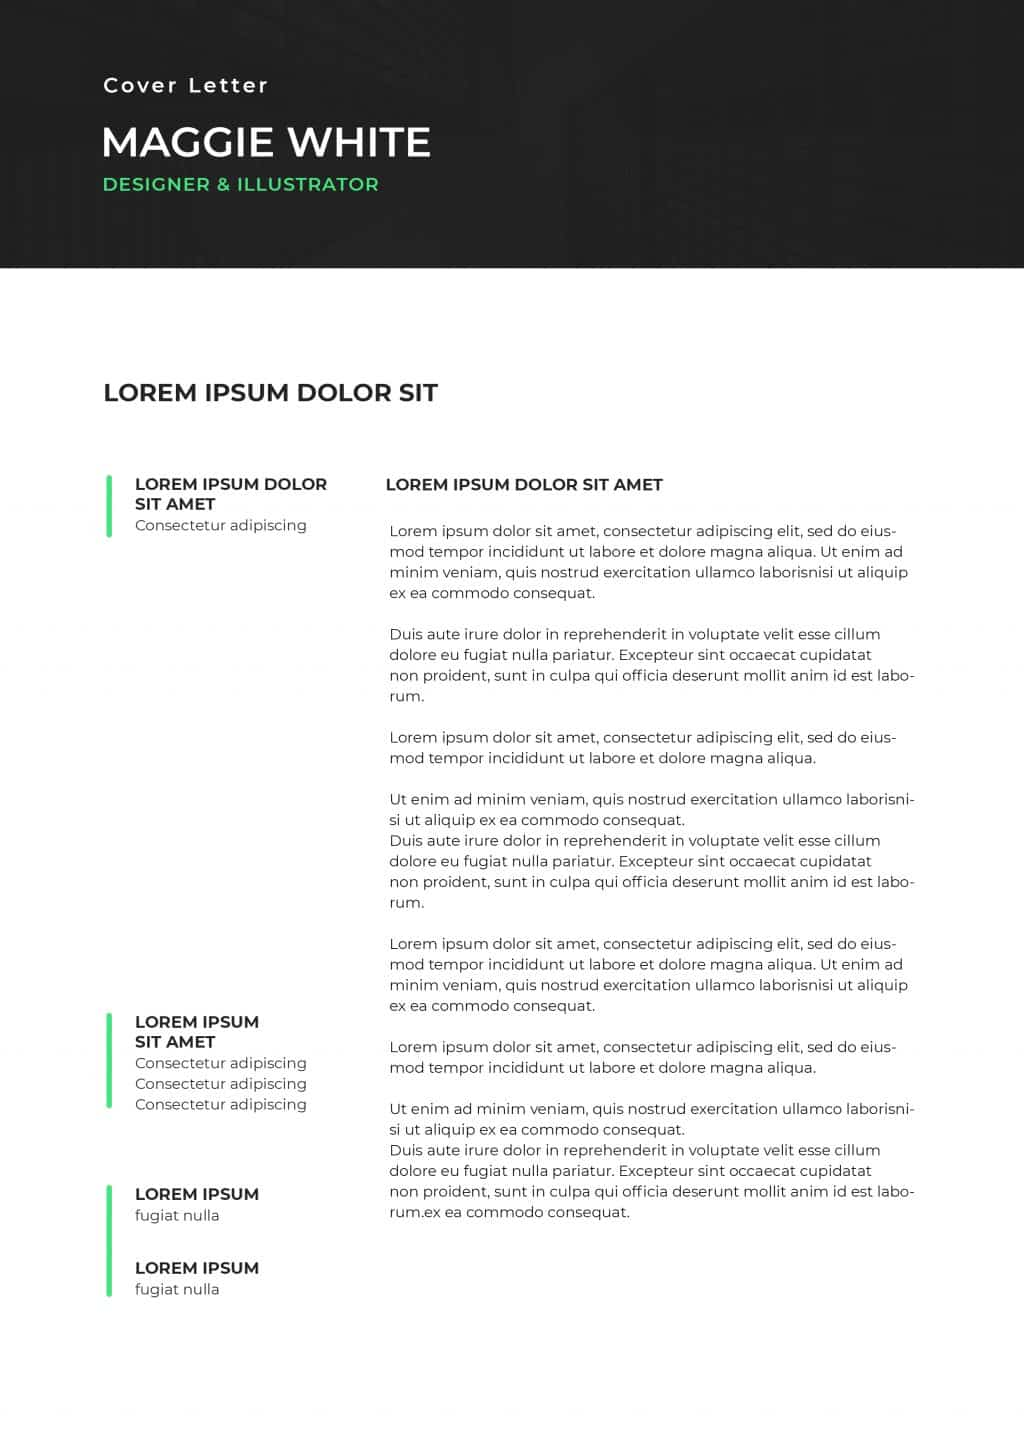 Best College Resume Templates 2020: 5 colors - $8 - cover letter 3